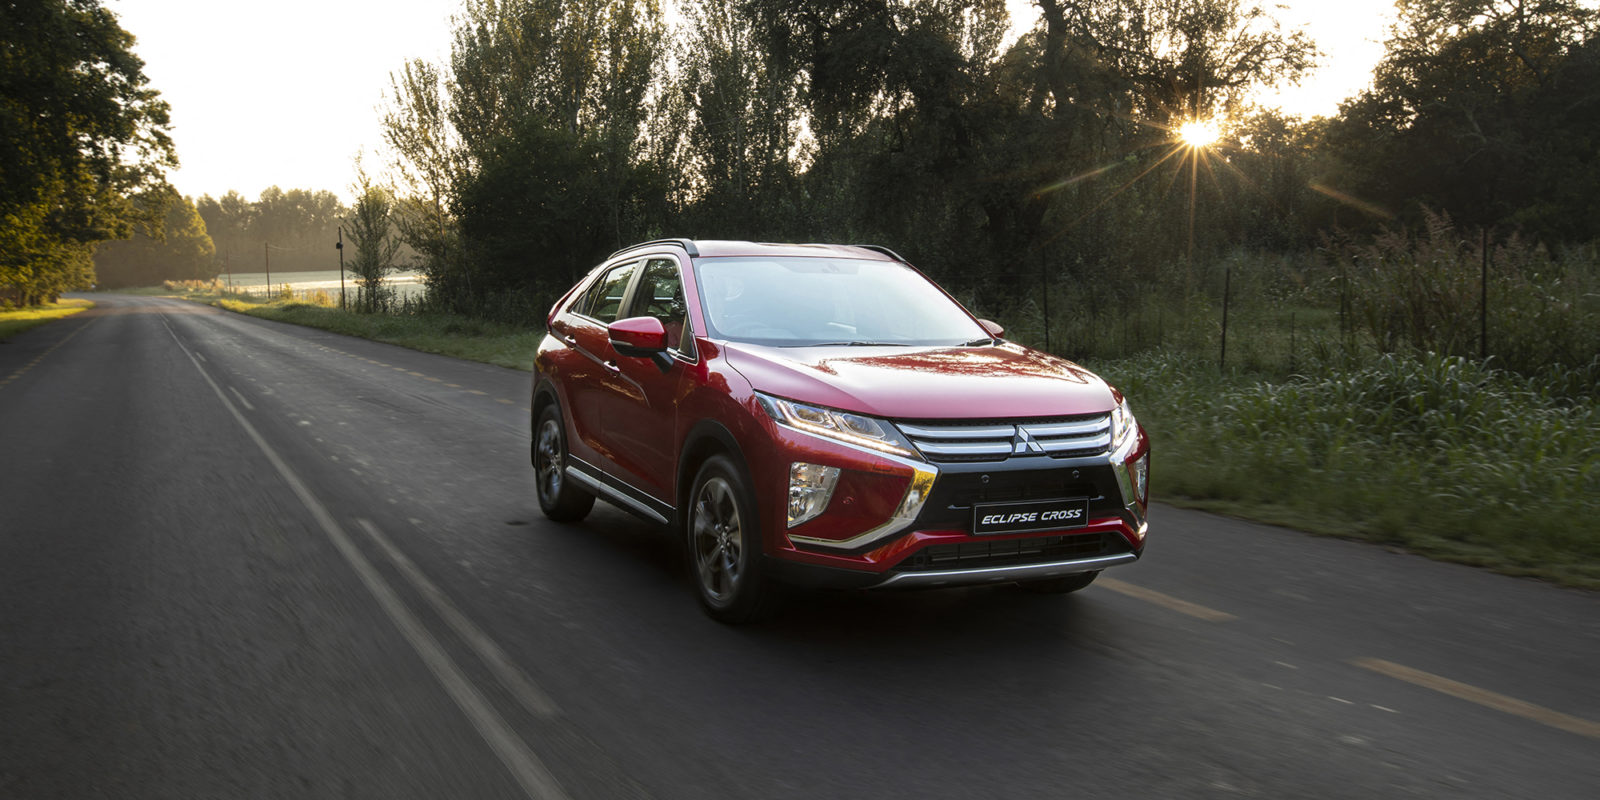 hight resolution of mitsubishi eclipse cross 2 0 a welcome touch of individuality